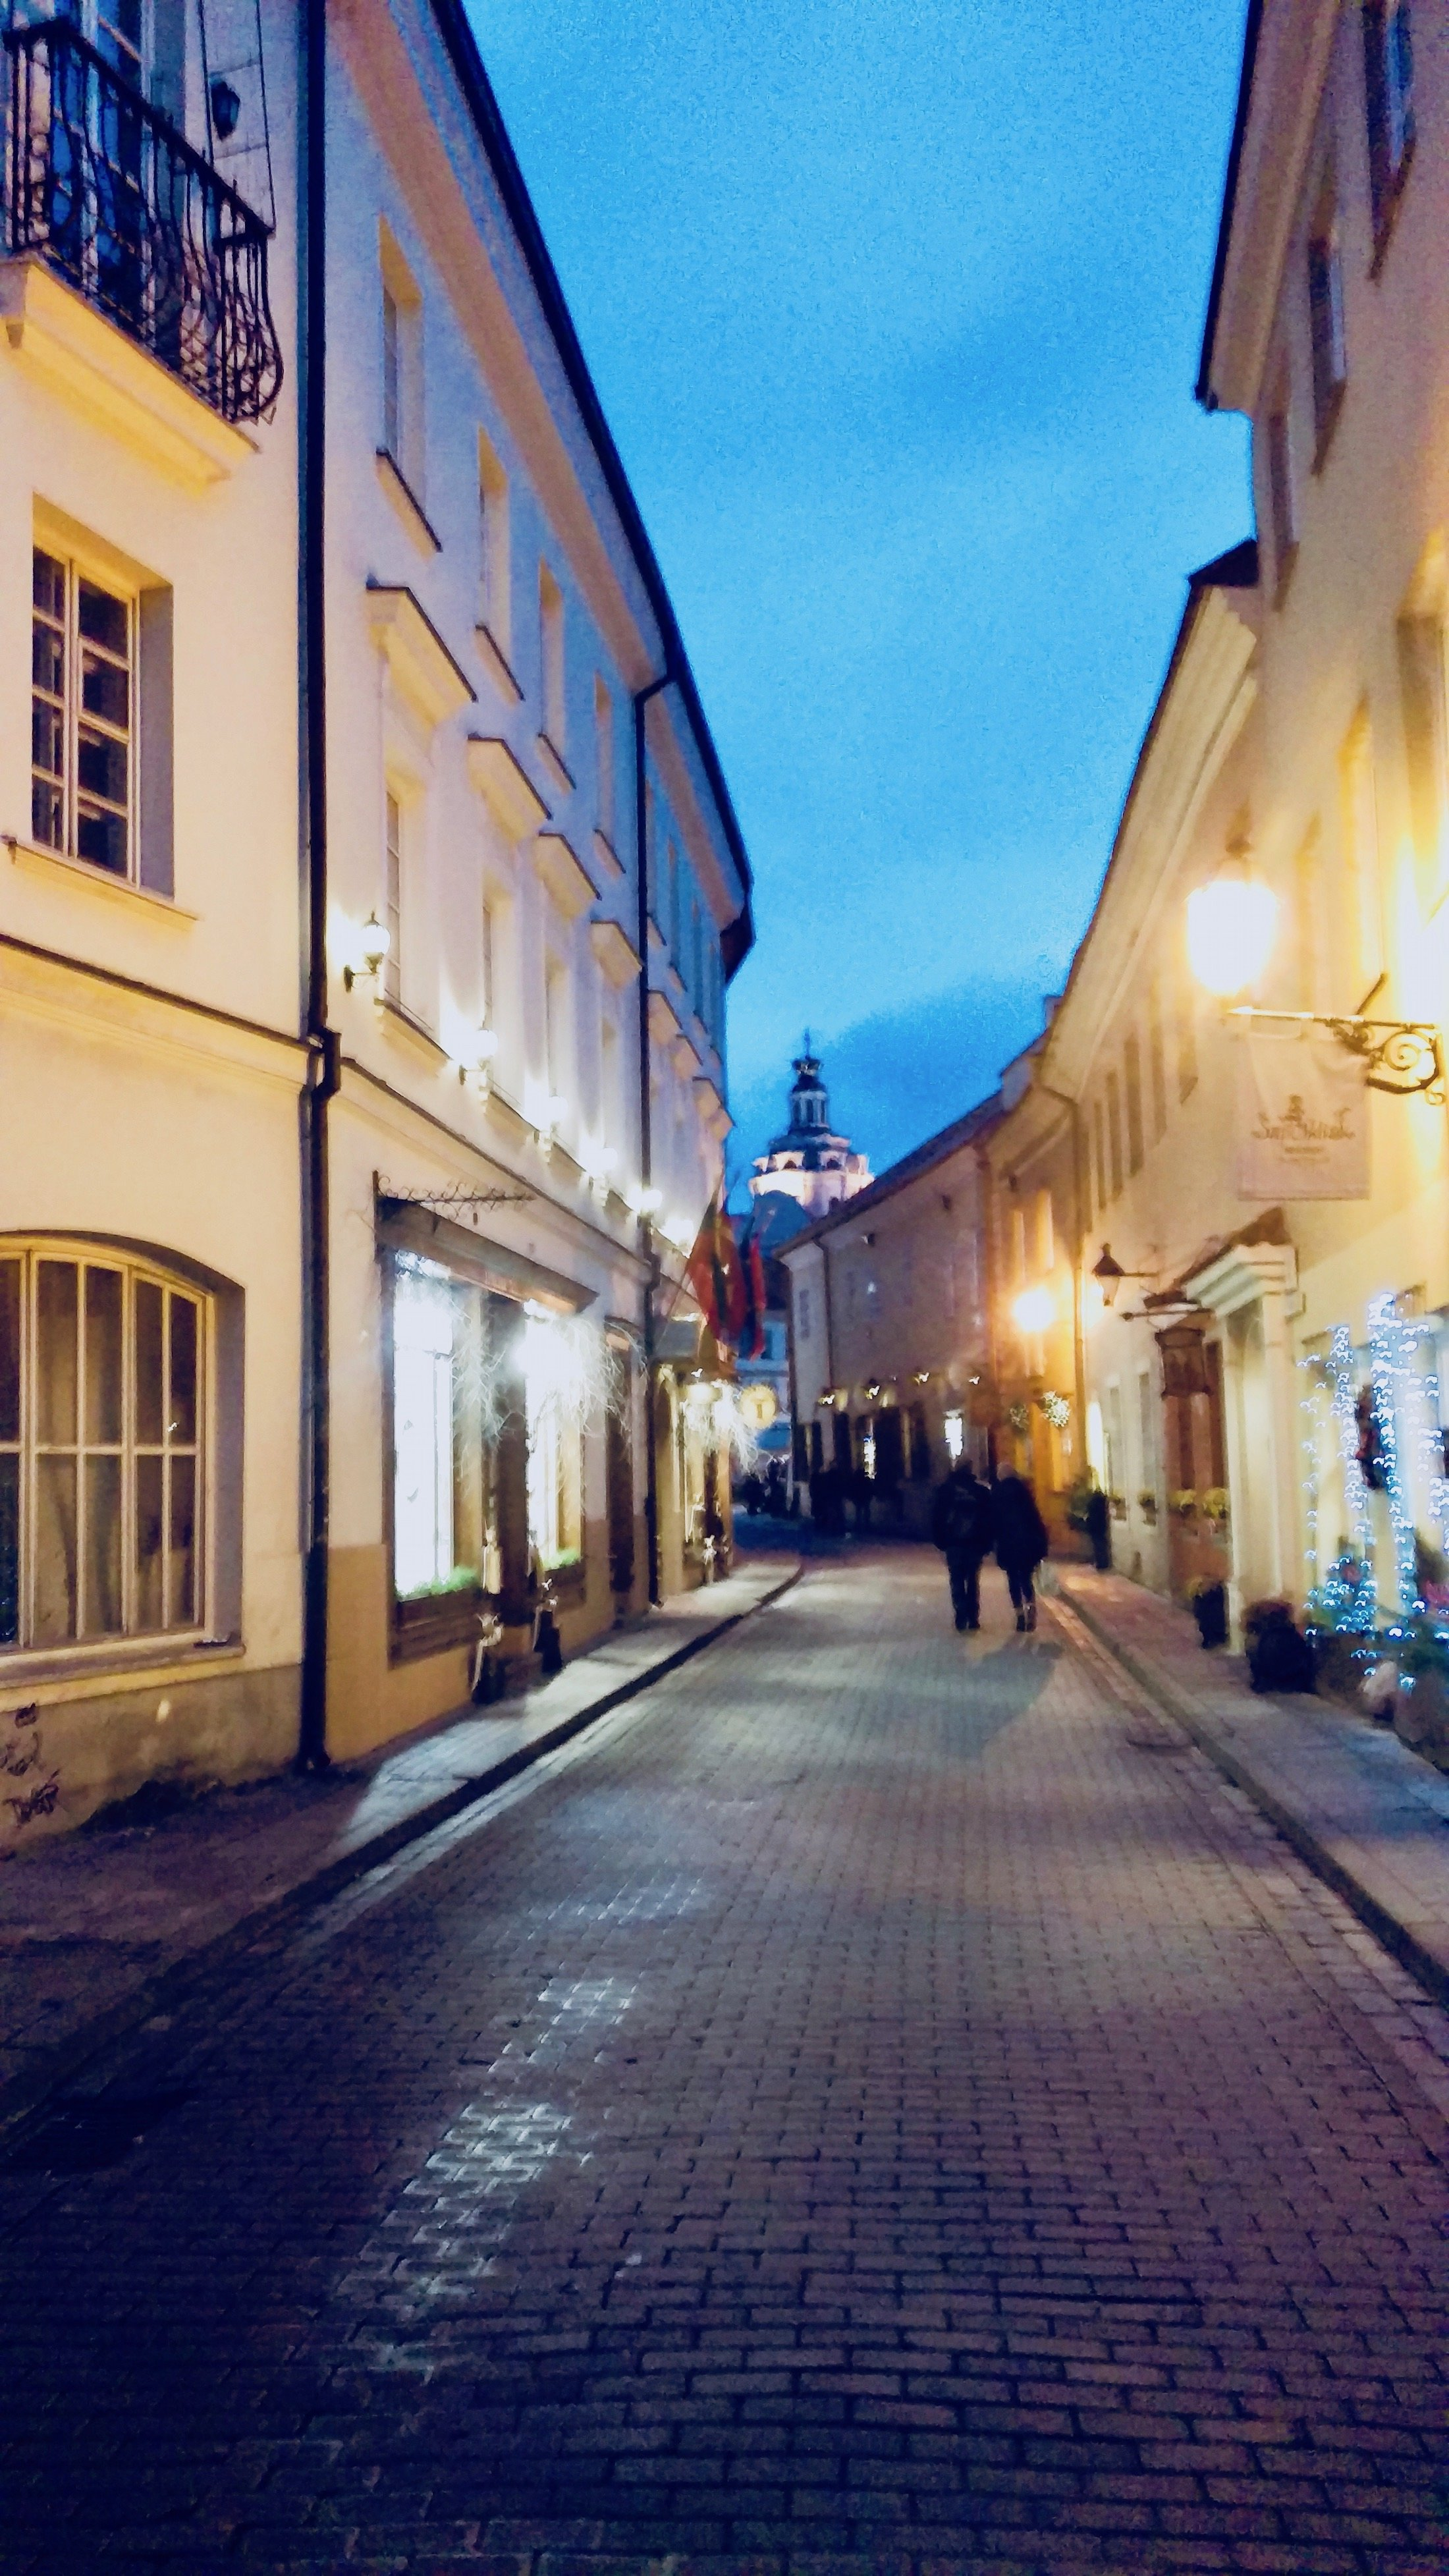 Narrow streets in the Old Town of Vilnius